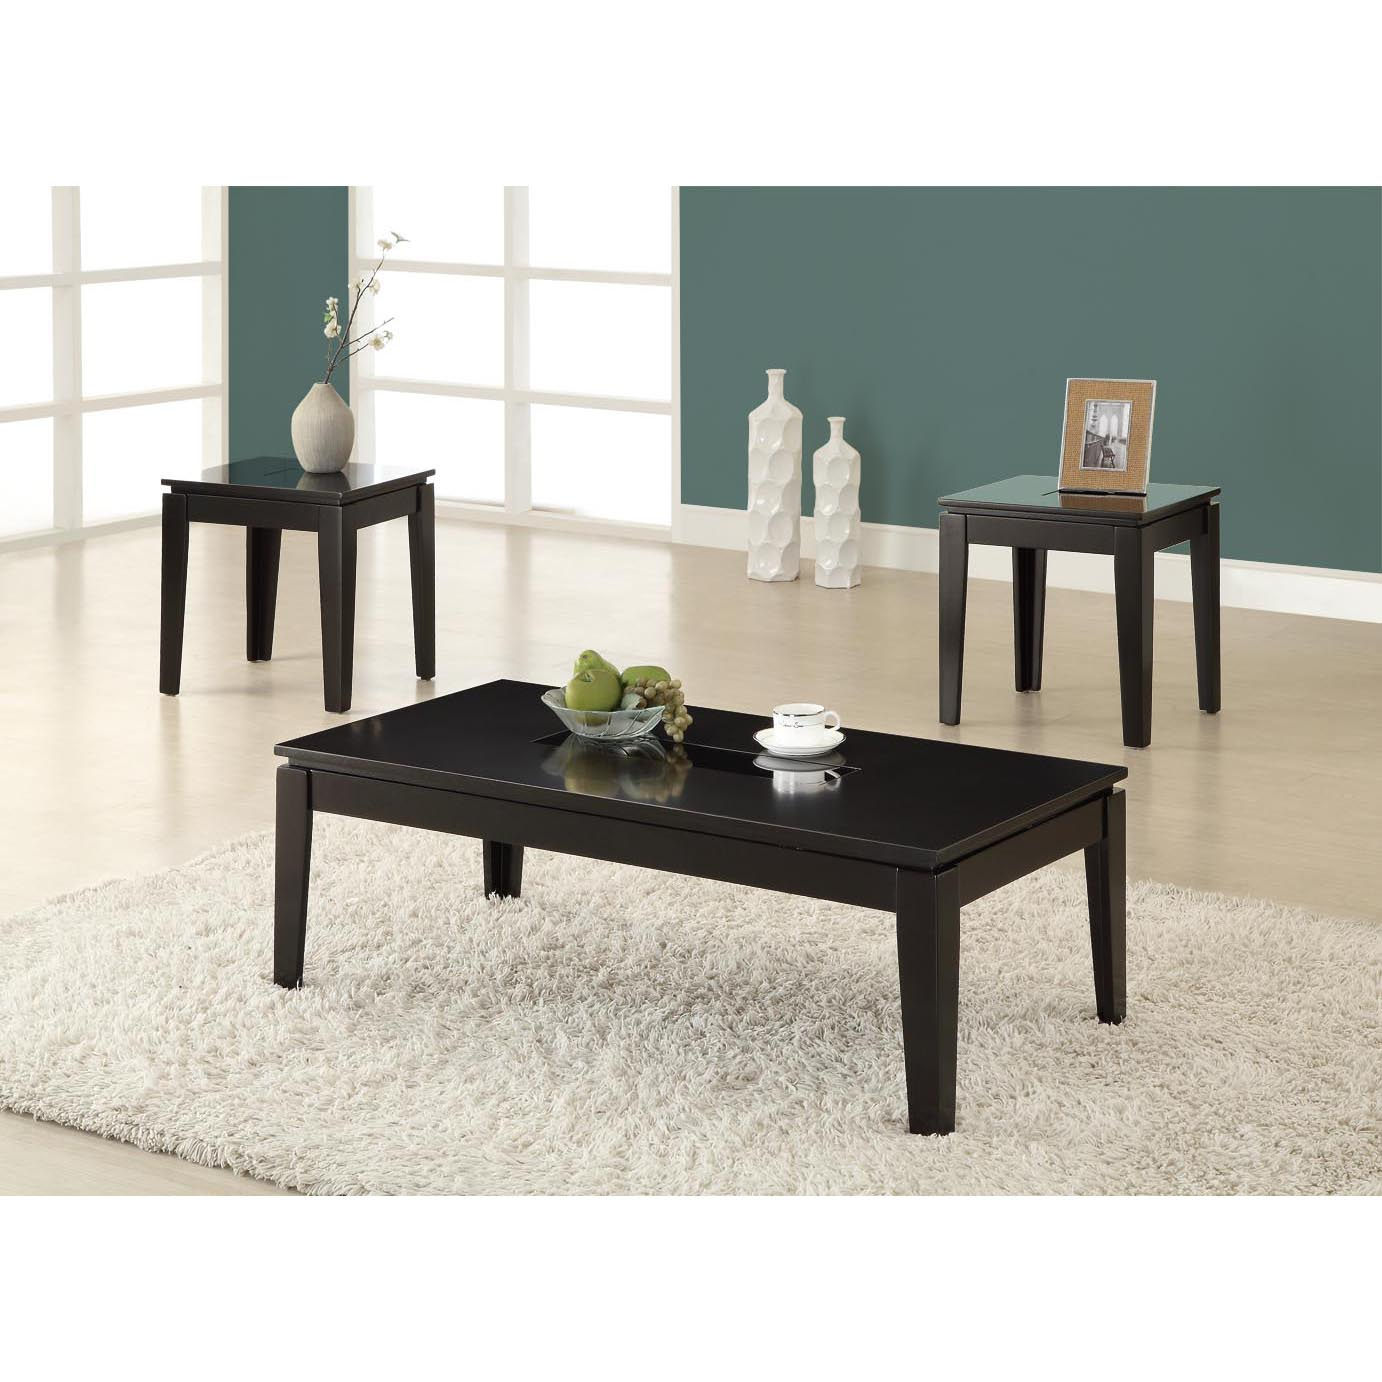 Glossy Black Grain 3-piece Promotional Table Set